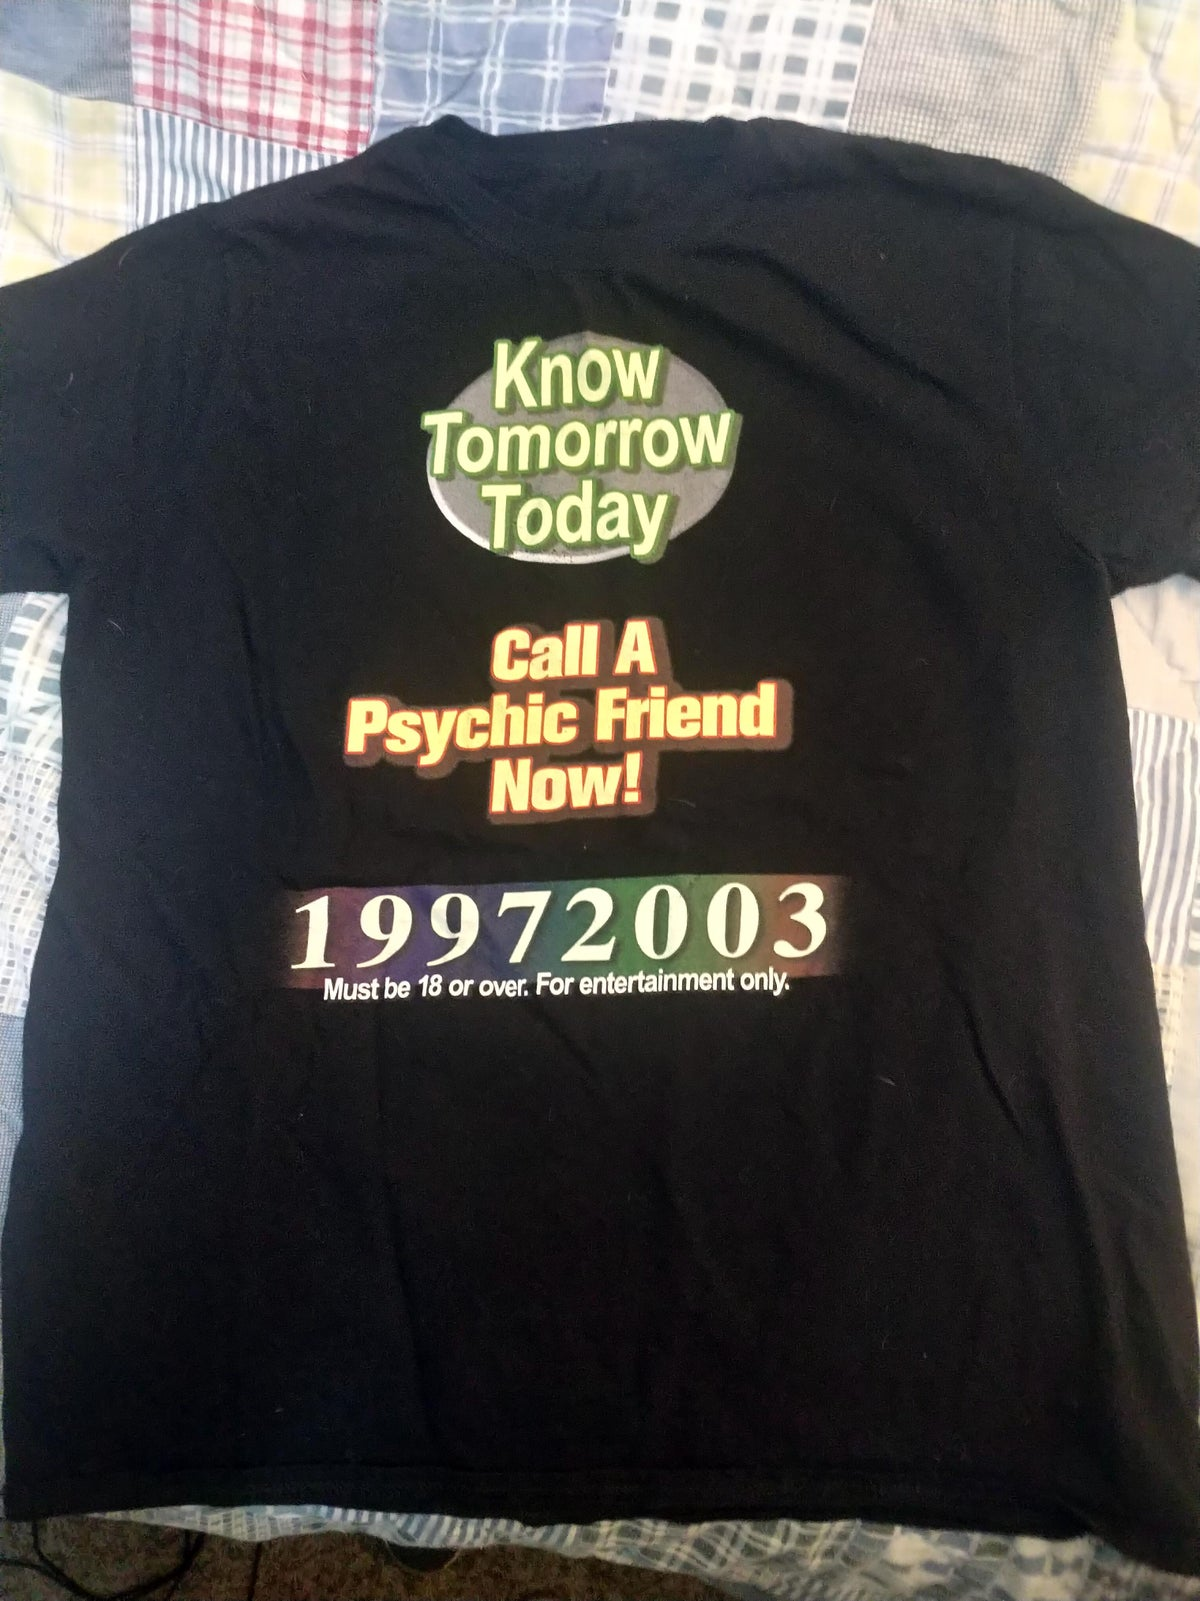 19972003 - KNOW TOMORROW TODAY - T-SHIRT